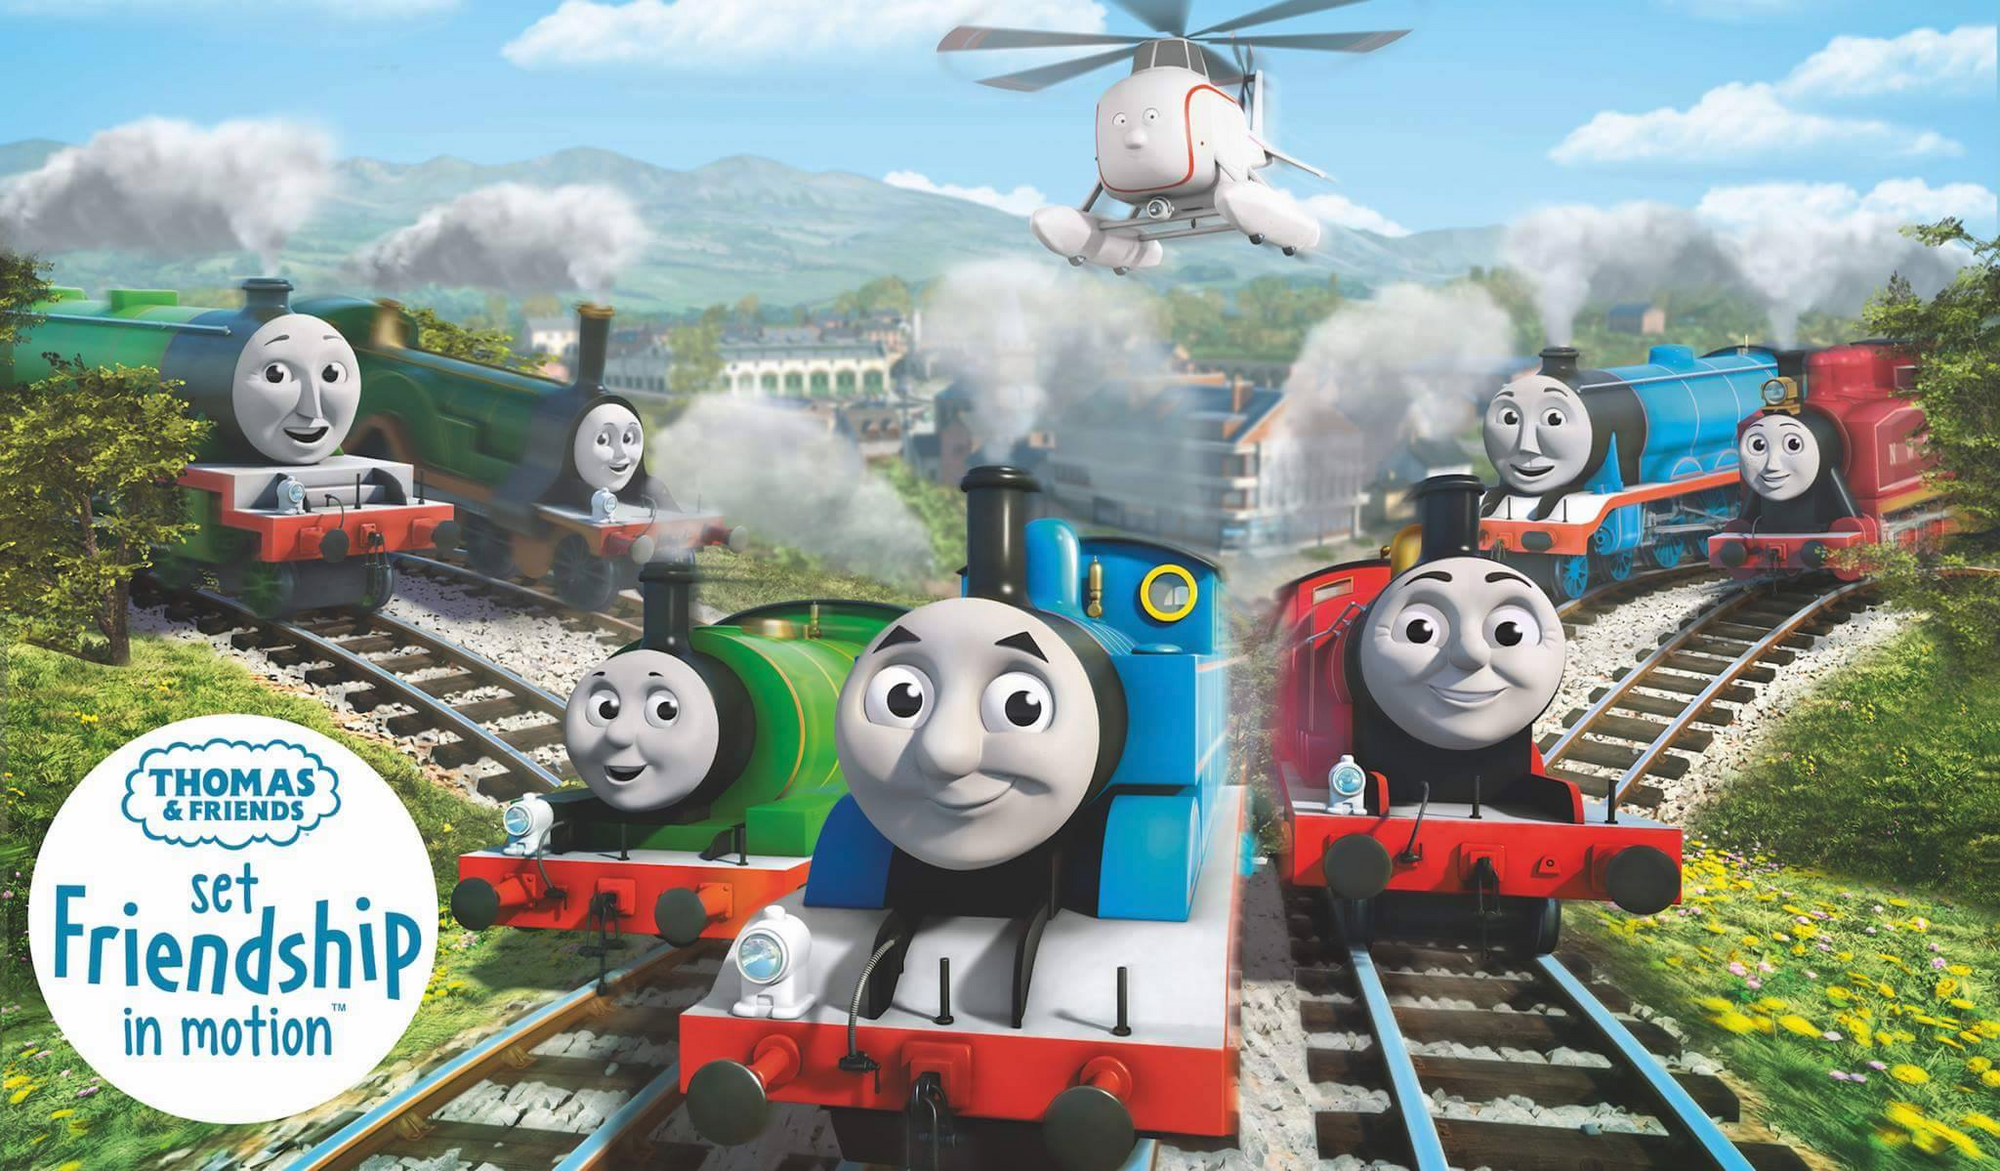 Image boco in trainz thomas and friends png scratchpad fandom - Image Boco In Trainz Thomas And Friends Png Scratchpad Fandom 3